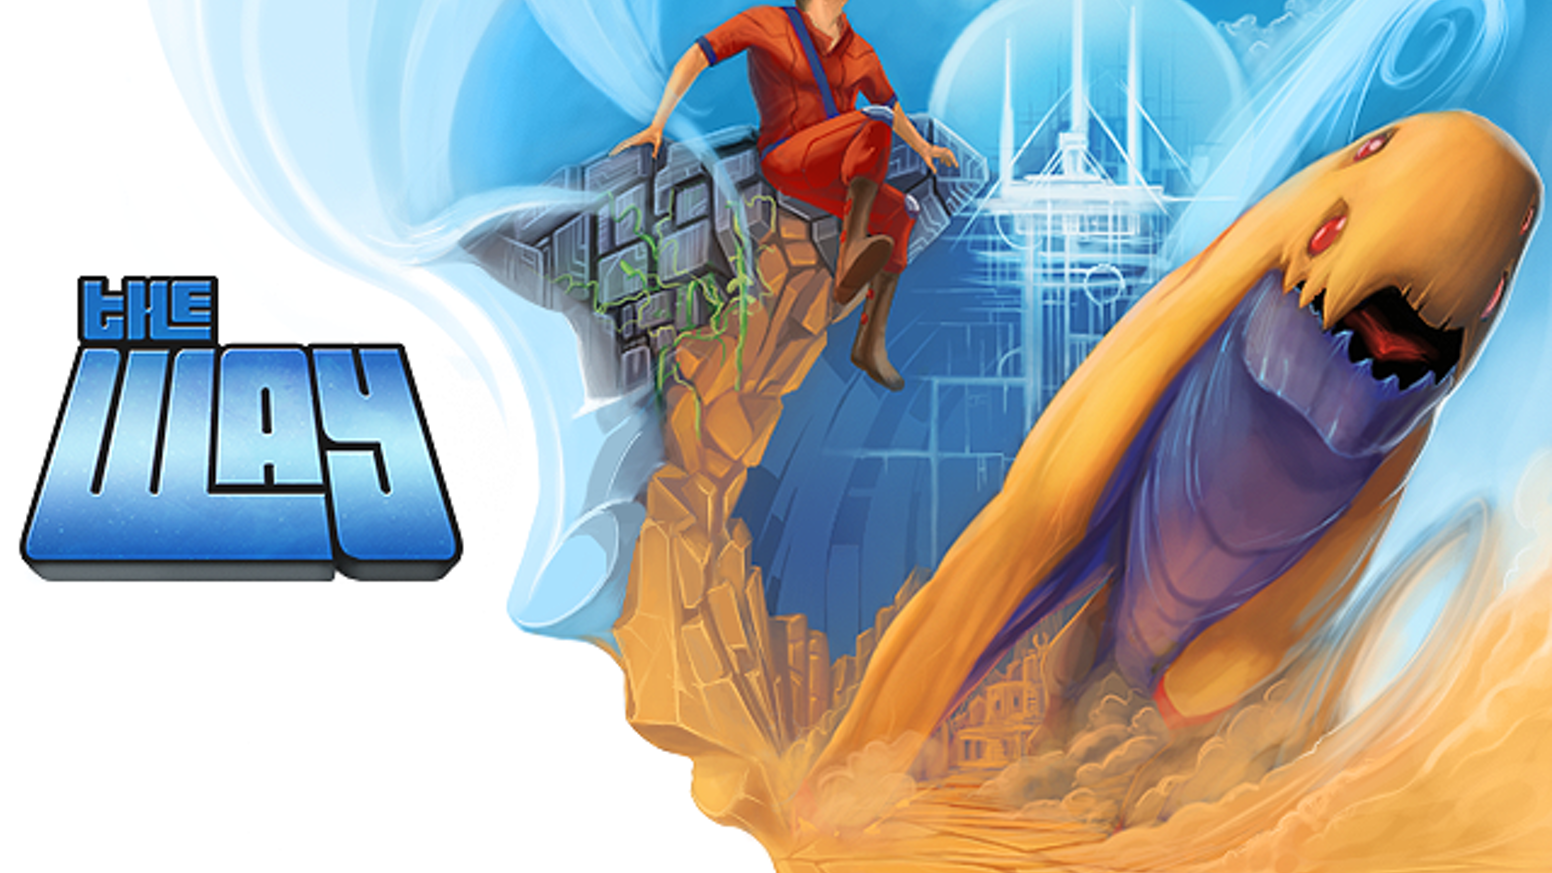 Journey to another planet and spend your life discovering its secrets in order to bring back your loved one. PC/Mac/Linux